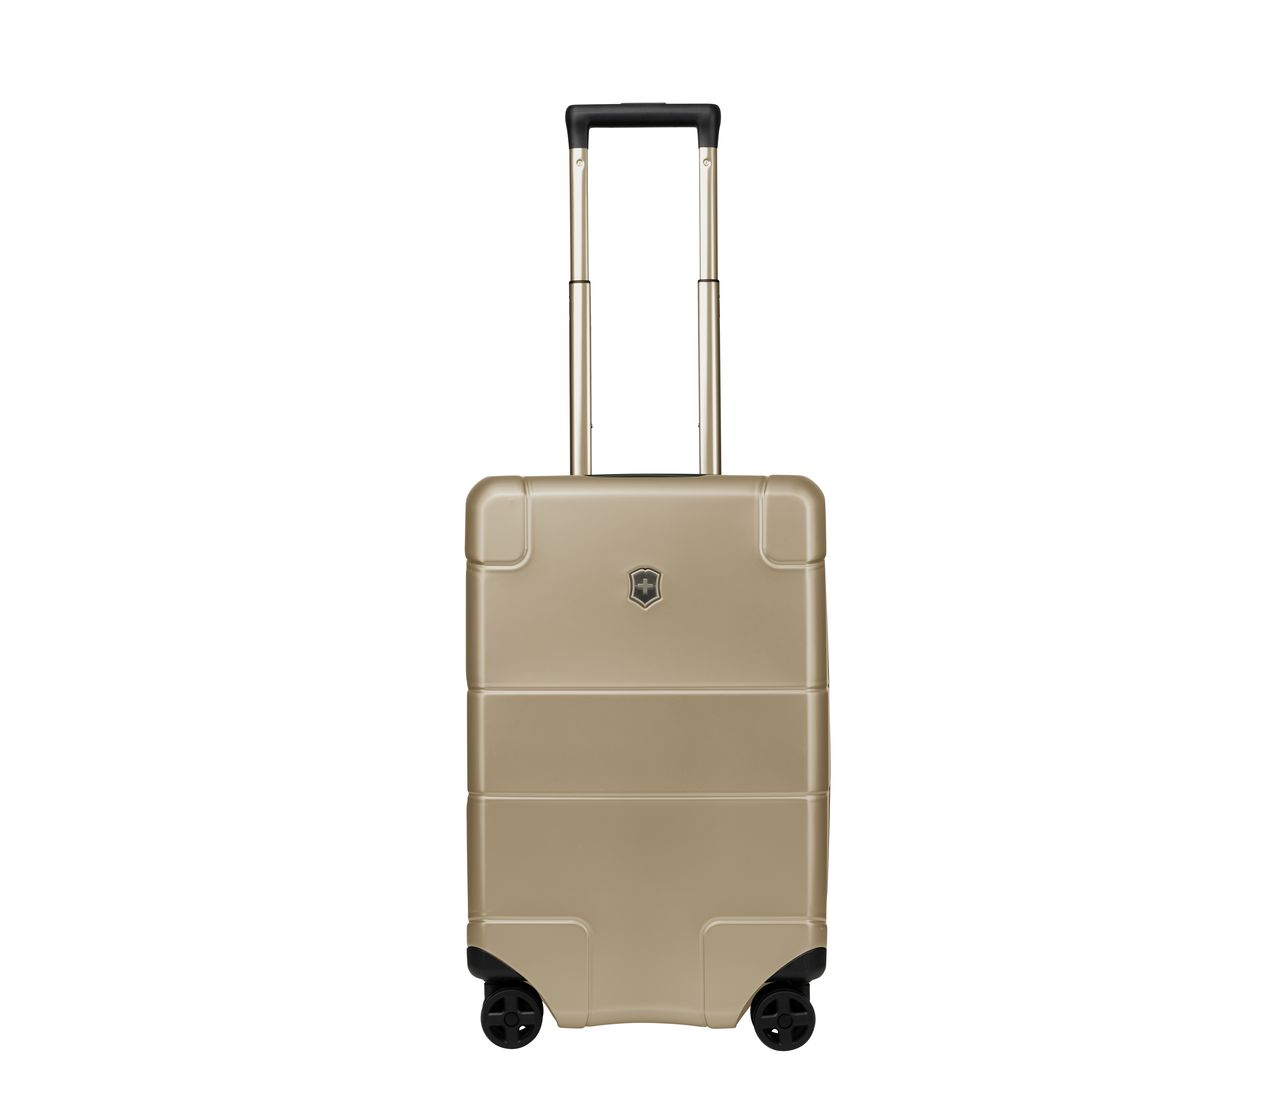 Lexicon Hardside Frequent Flyer Carry-On-606780